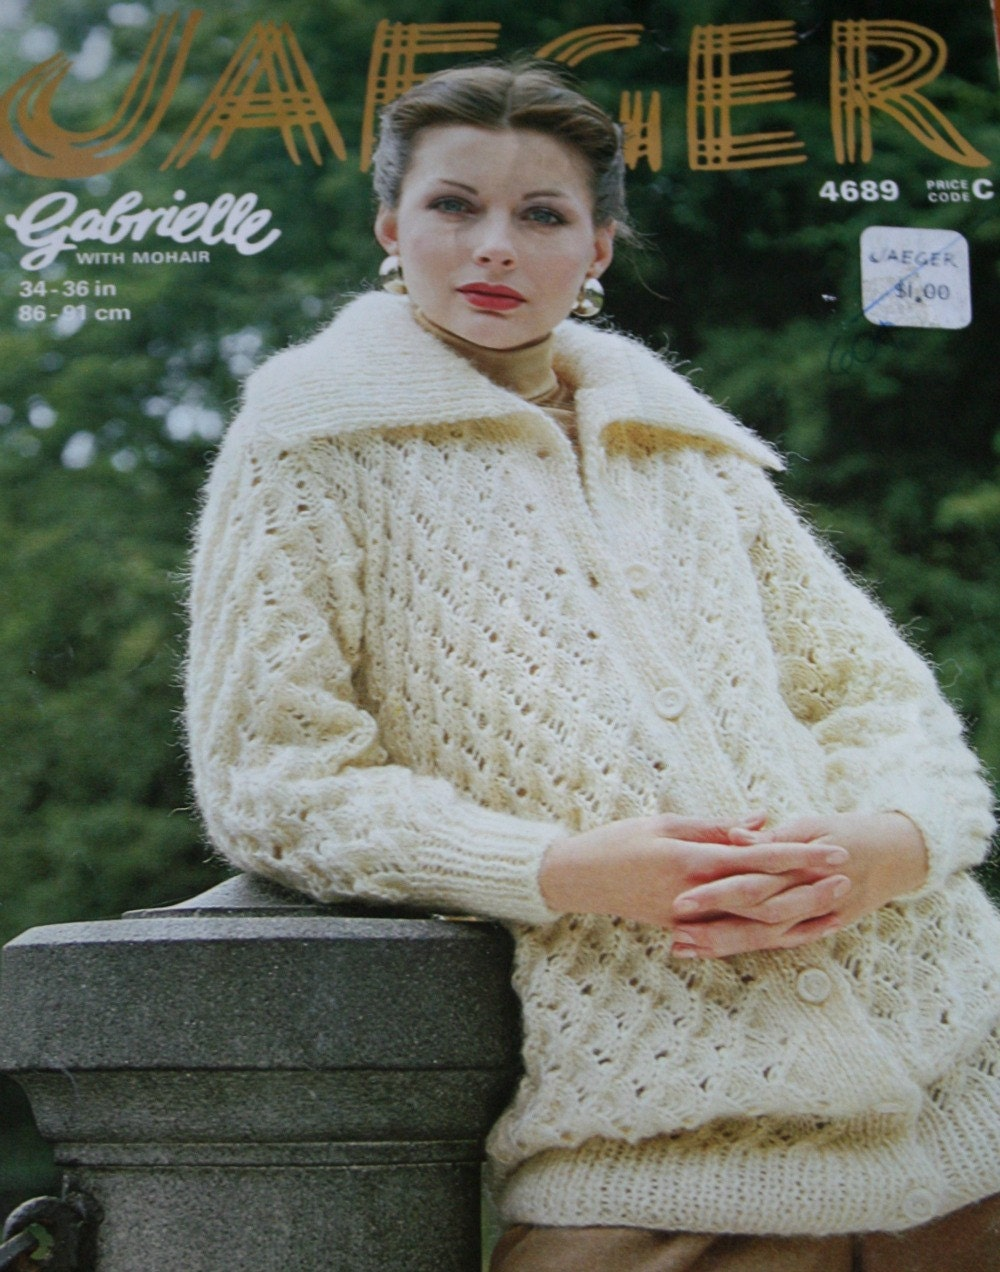 Cardigan knitting pattern warmly elegant jaeger 4689 sweater details knitting pattern bankloansurffo Images